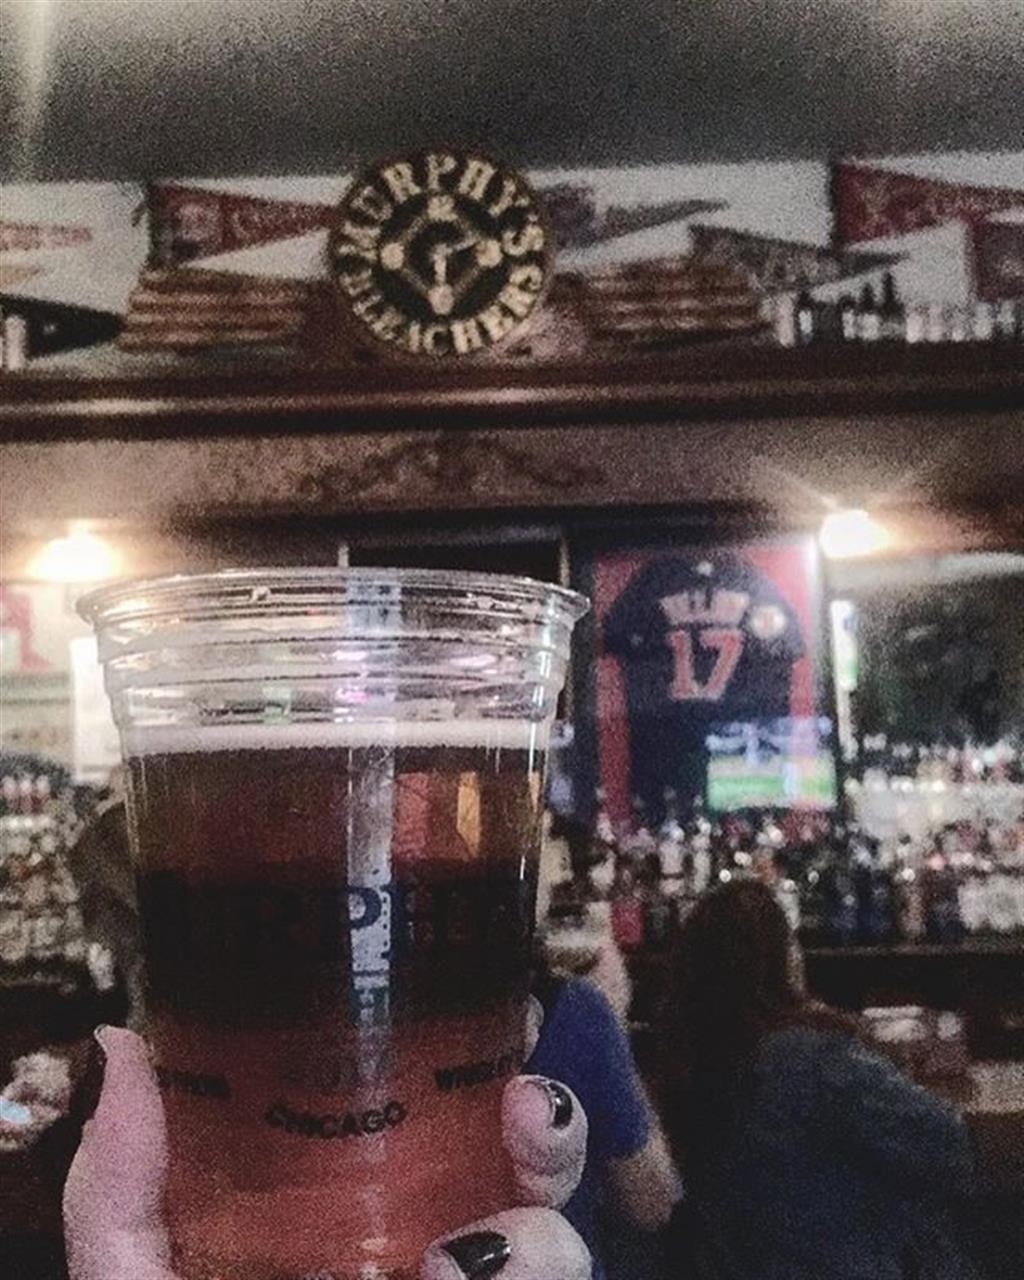 #tossback to @cubs playoffs and a cold one at @murphysbleachers #chicago #lakeview #wrigleyville #leadingrelocal #neighborhoods #chicagocubs #chicagosports #bairdwarner